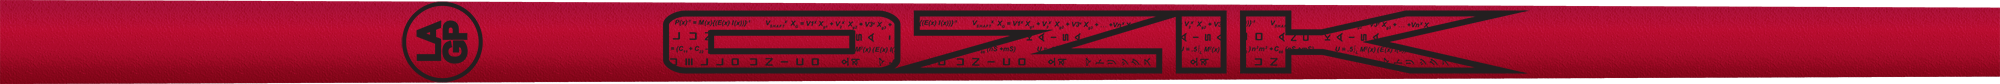 Ozik White Tie: Red Black Textured - Wood 40 A